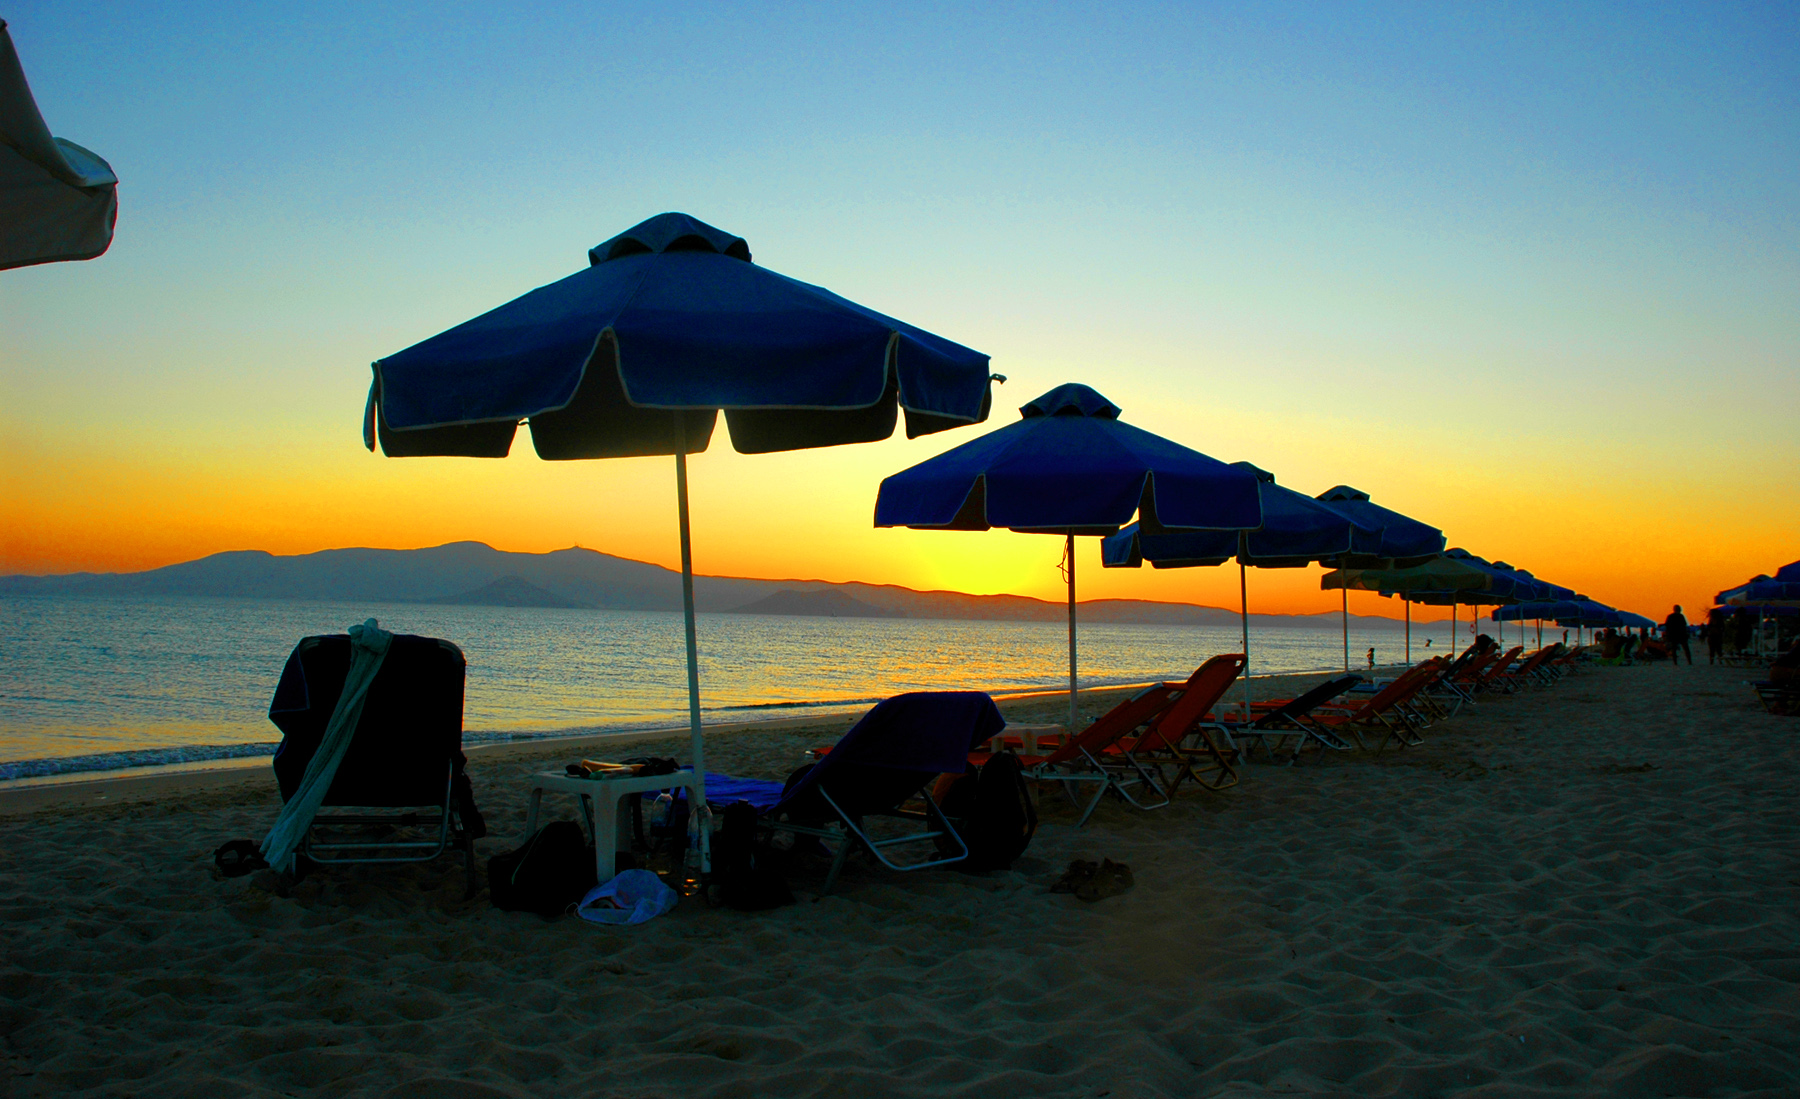 Sunset at the Plaka beach in Naxos one of the best beaches in Greece